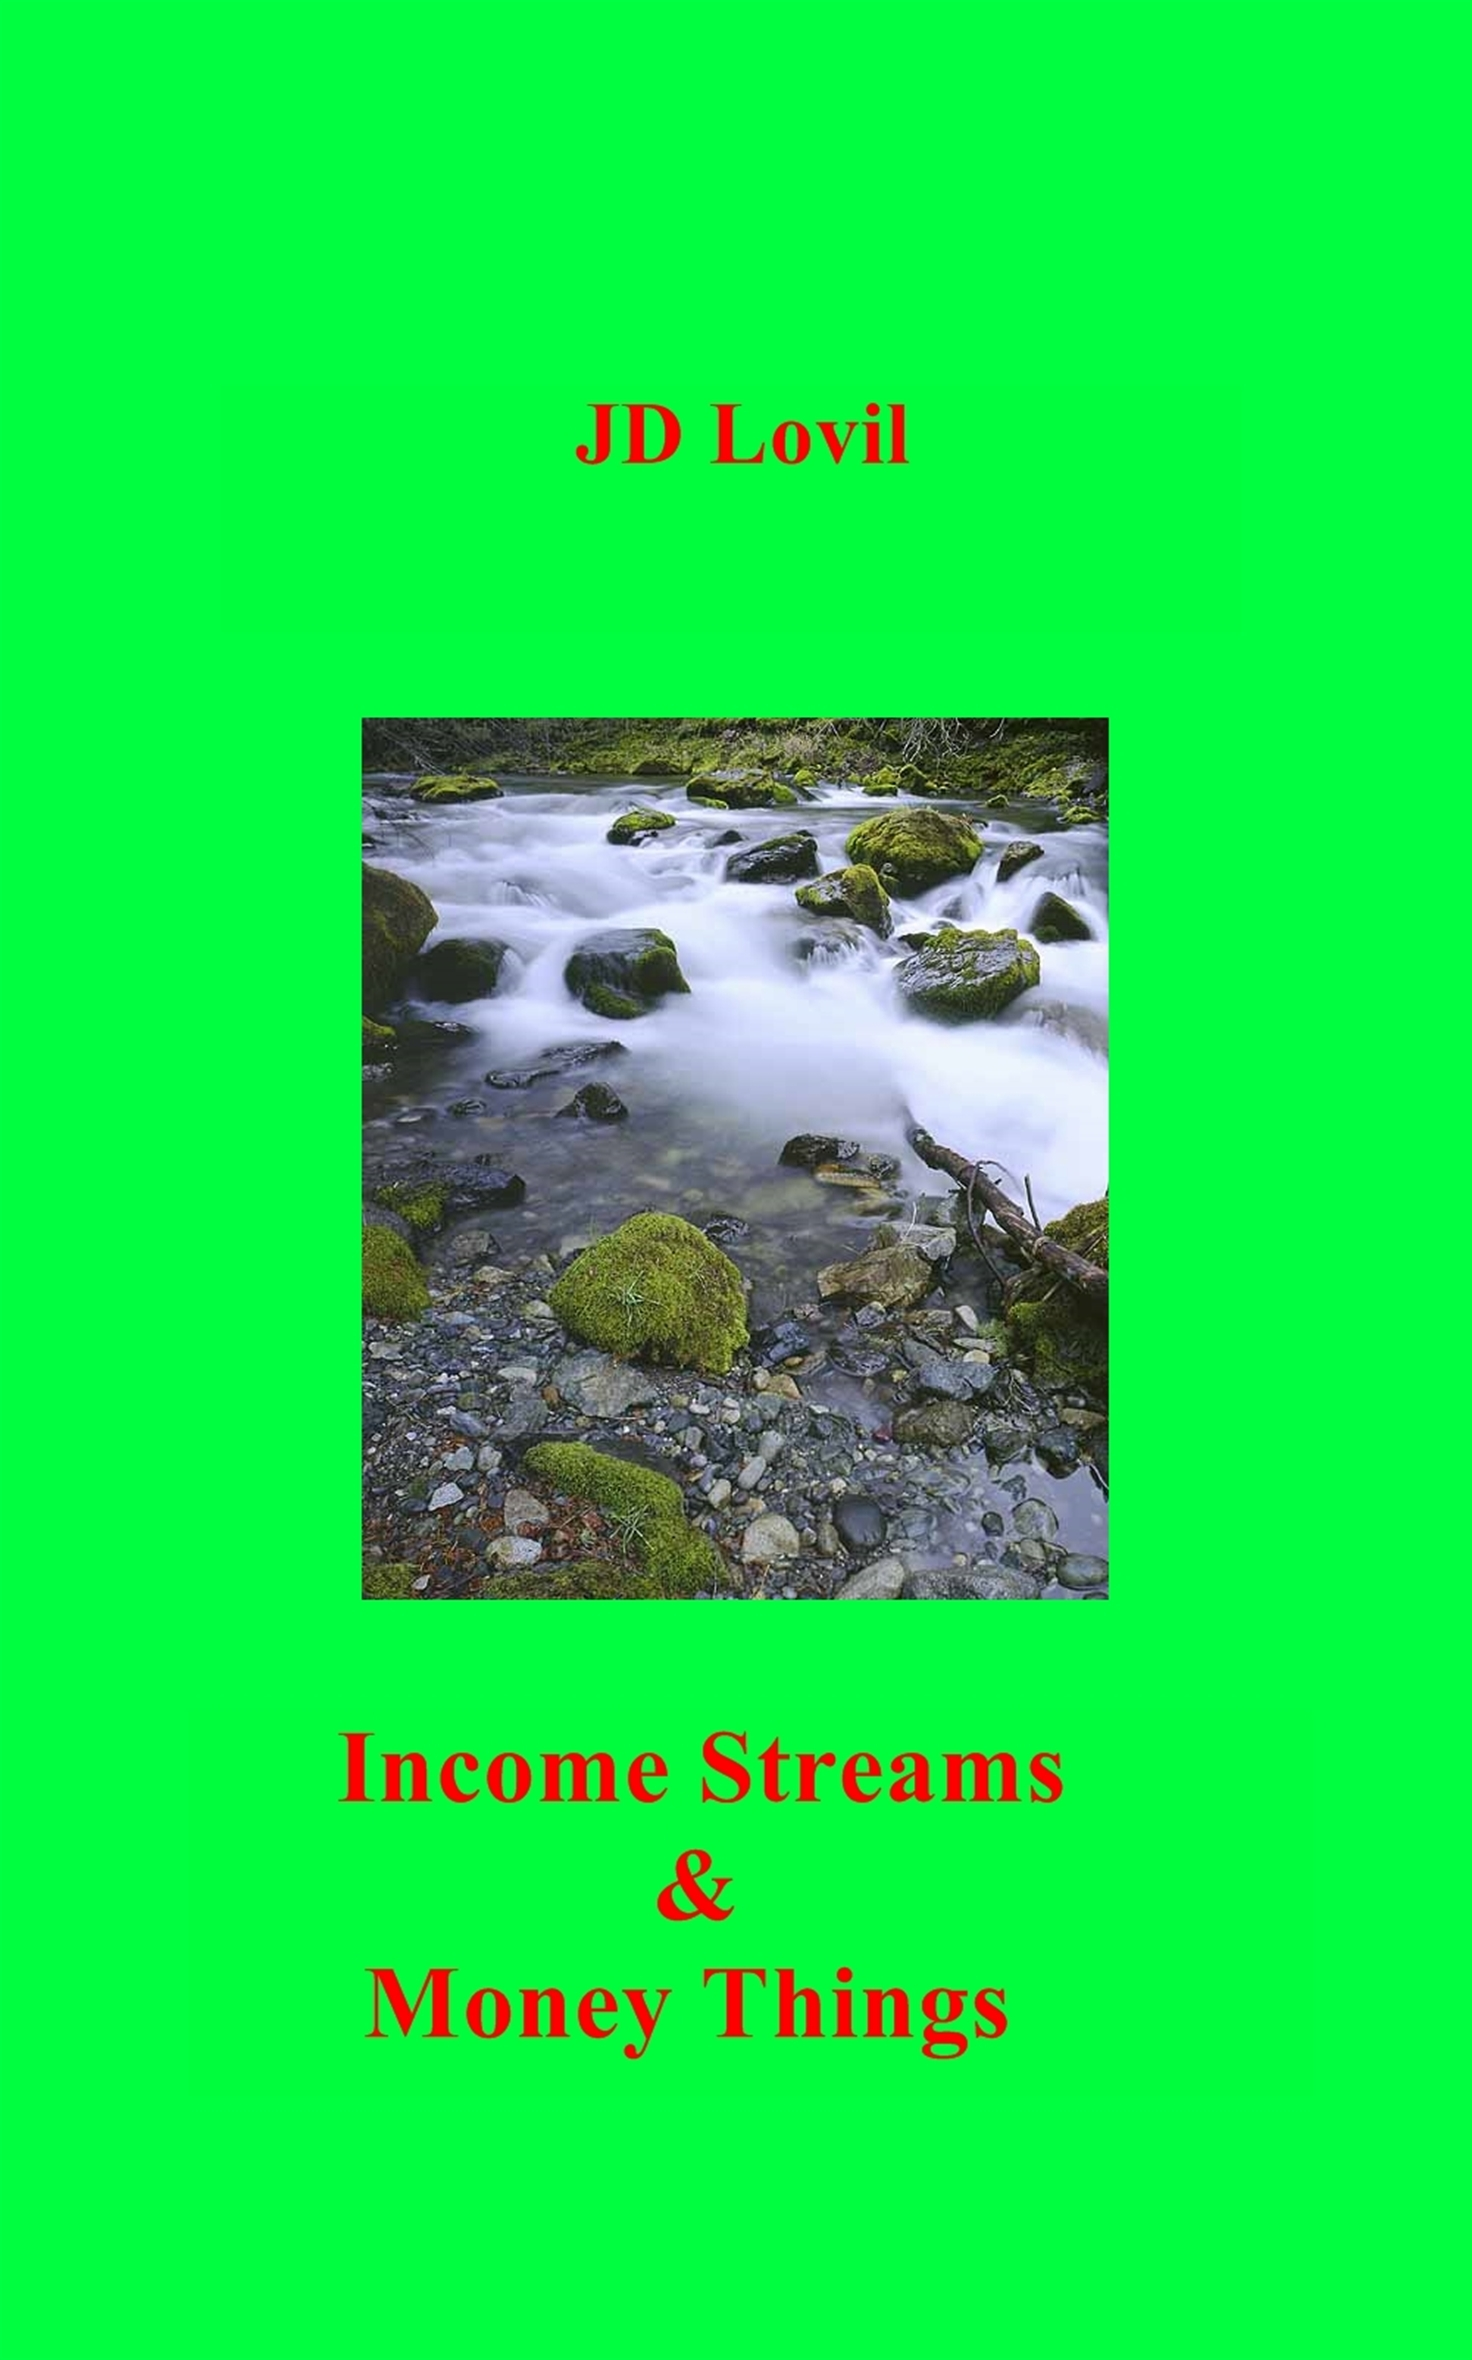 Income Streams & Money Things